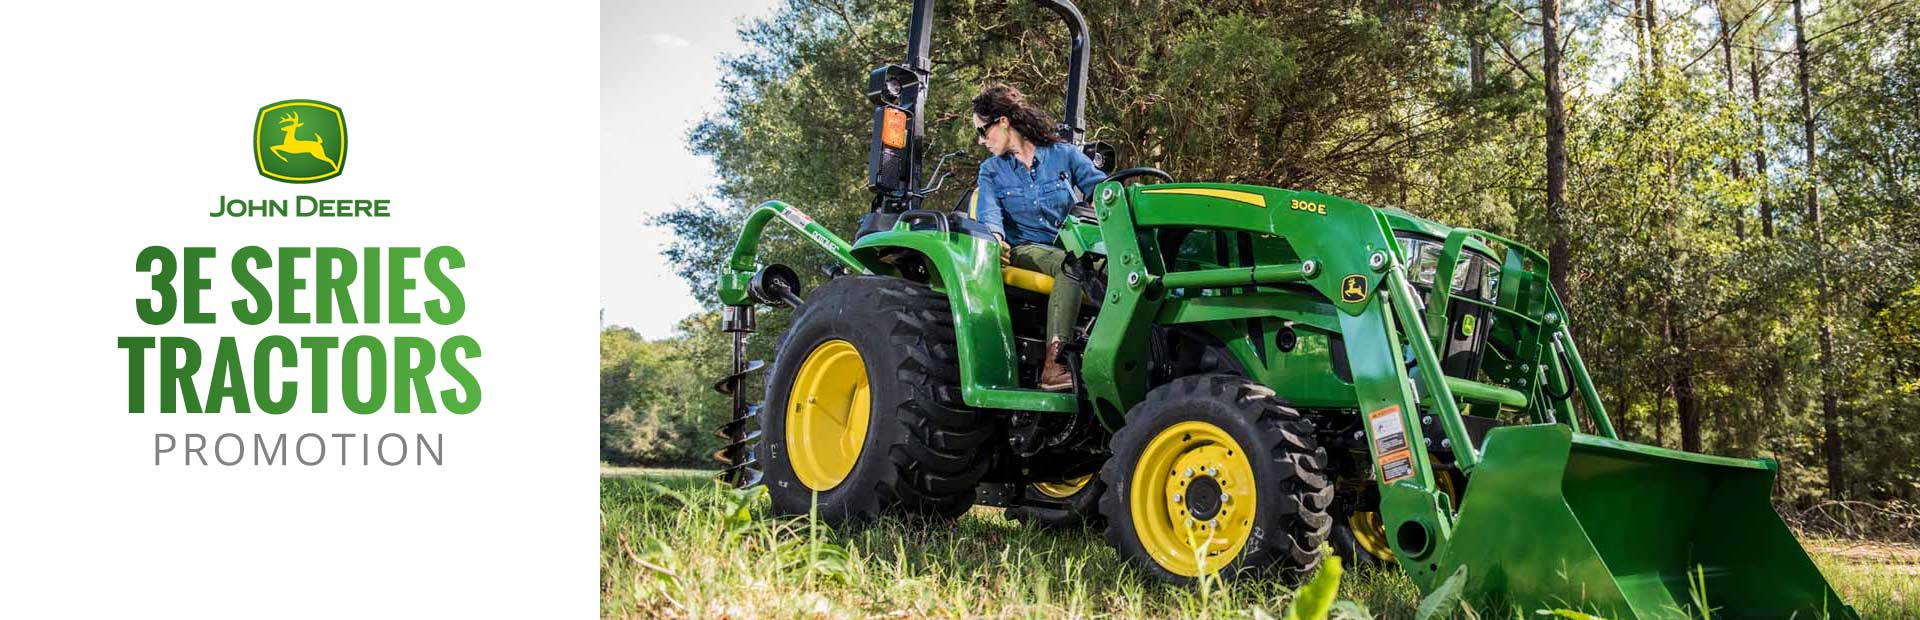 John Deere 3E Series Tractors: Click here to view the models.